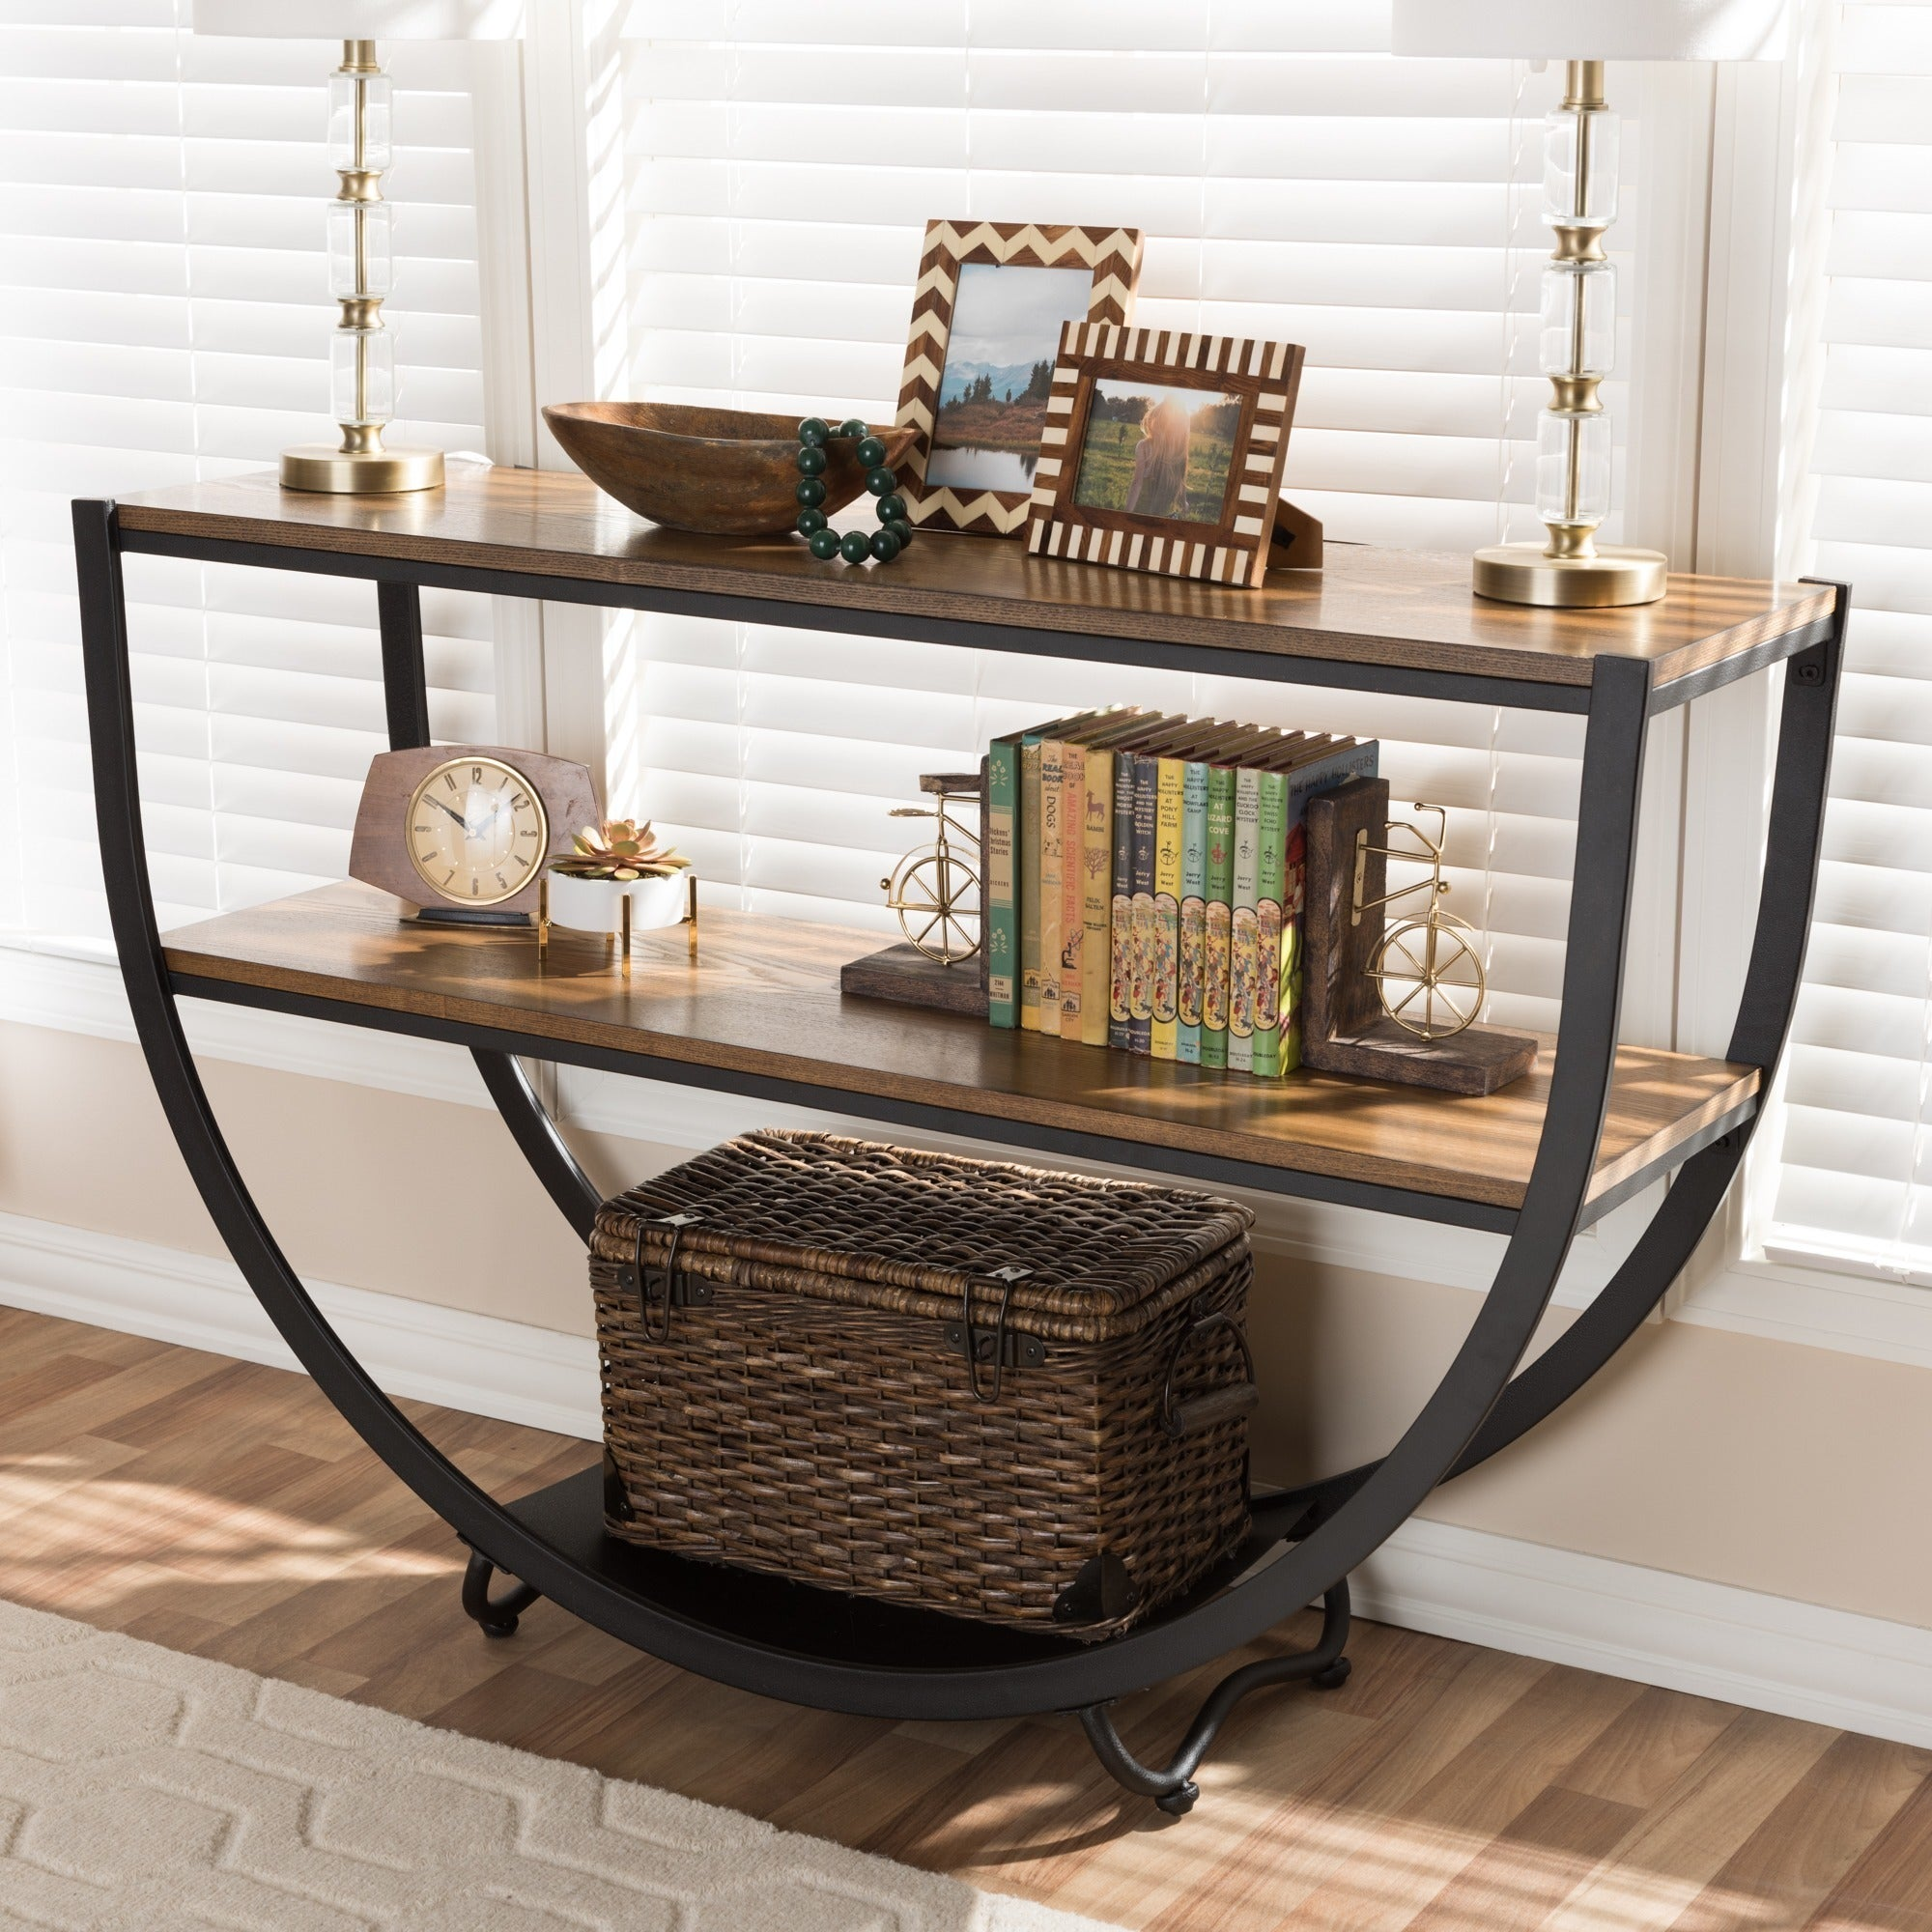 Shop carbon loft cohn vintage industrial console table free shipping today overstock com 20543628